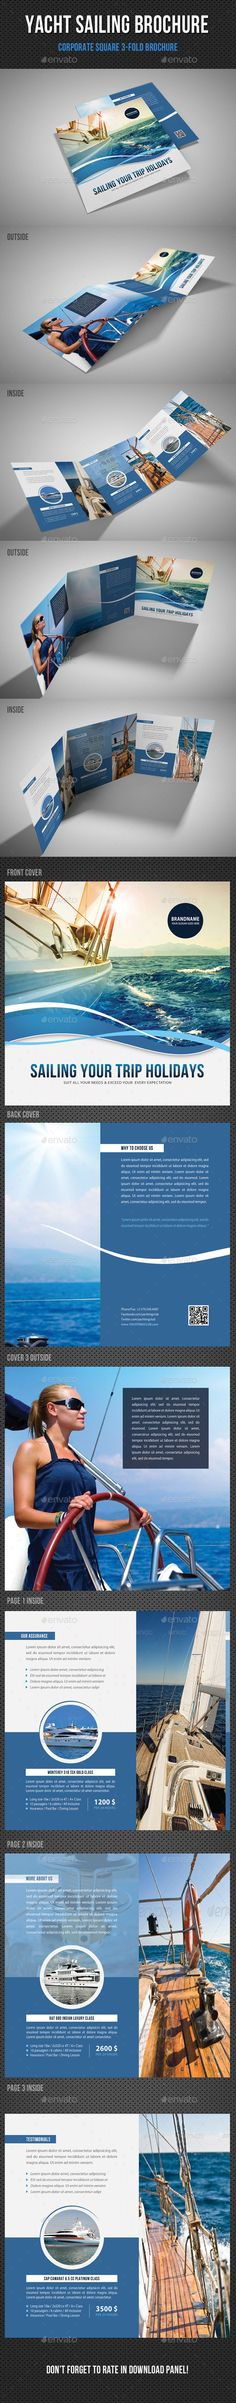 Yacht Boat Sailing Square 3Fold Brochure 02 — Photoshop PSD #anchor #minimal • Available here → https://graphicriver.net/item/yacht-boat-sailing-square-3fold-brochure-02/11339703?ref=pxcr